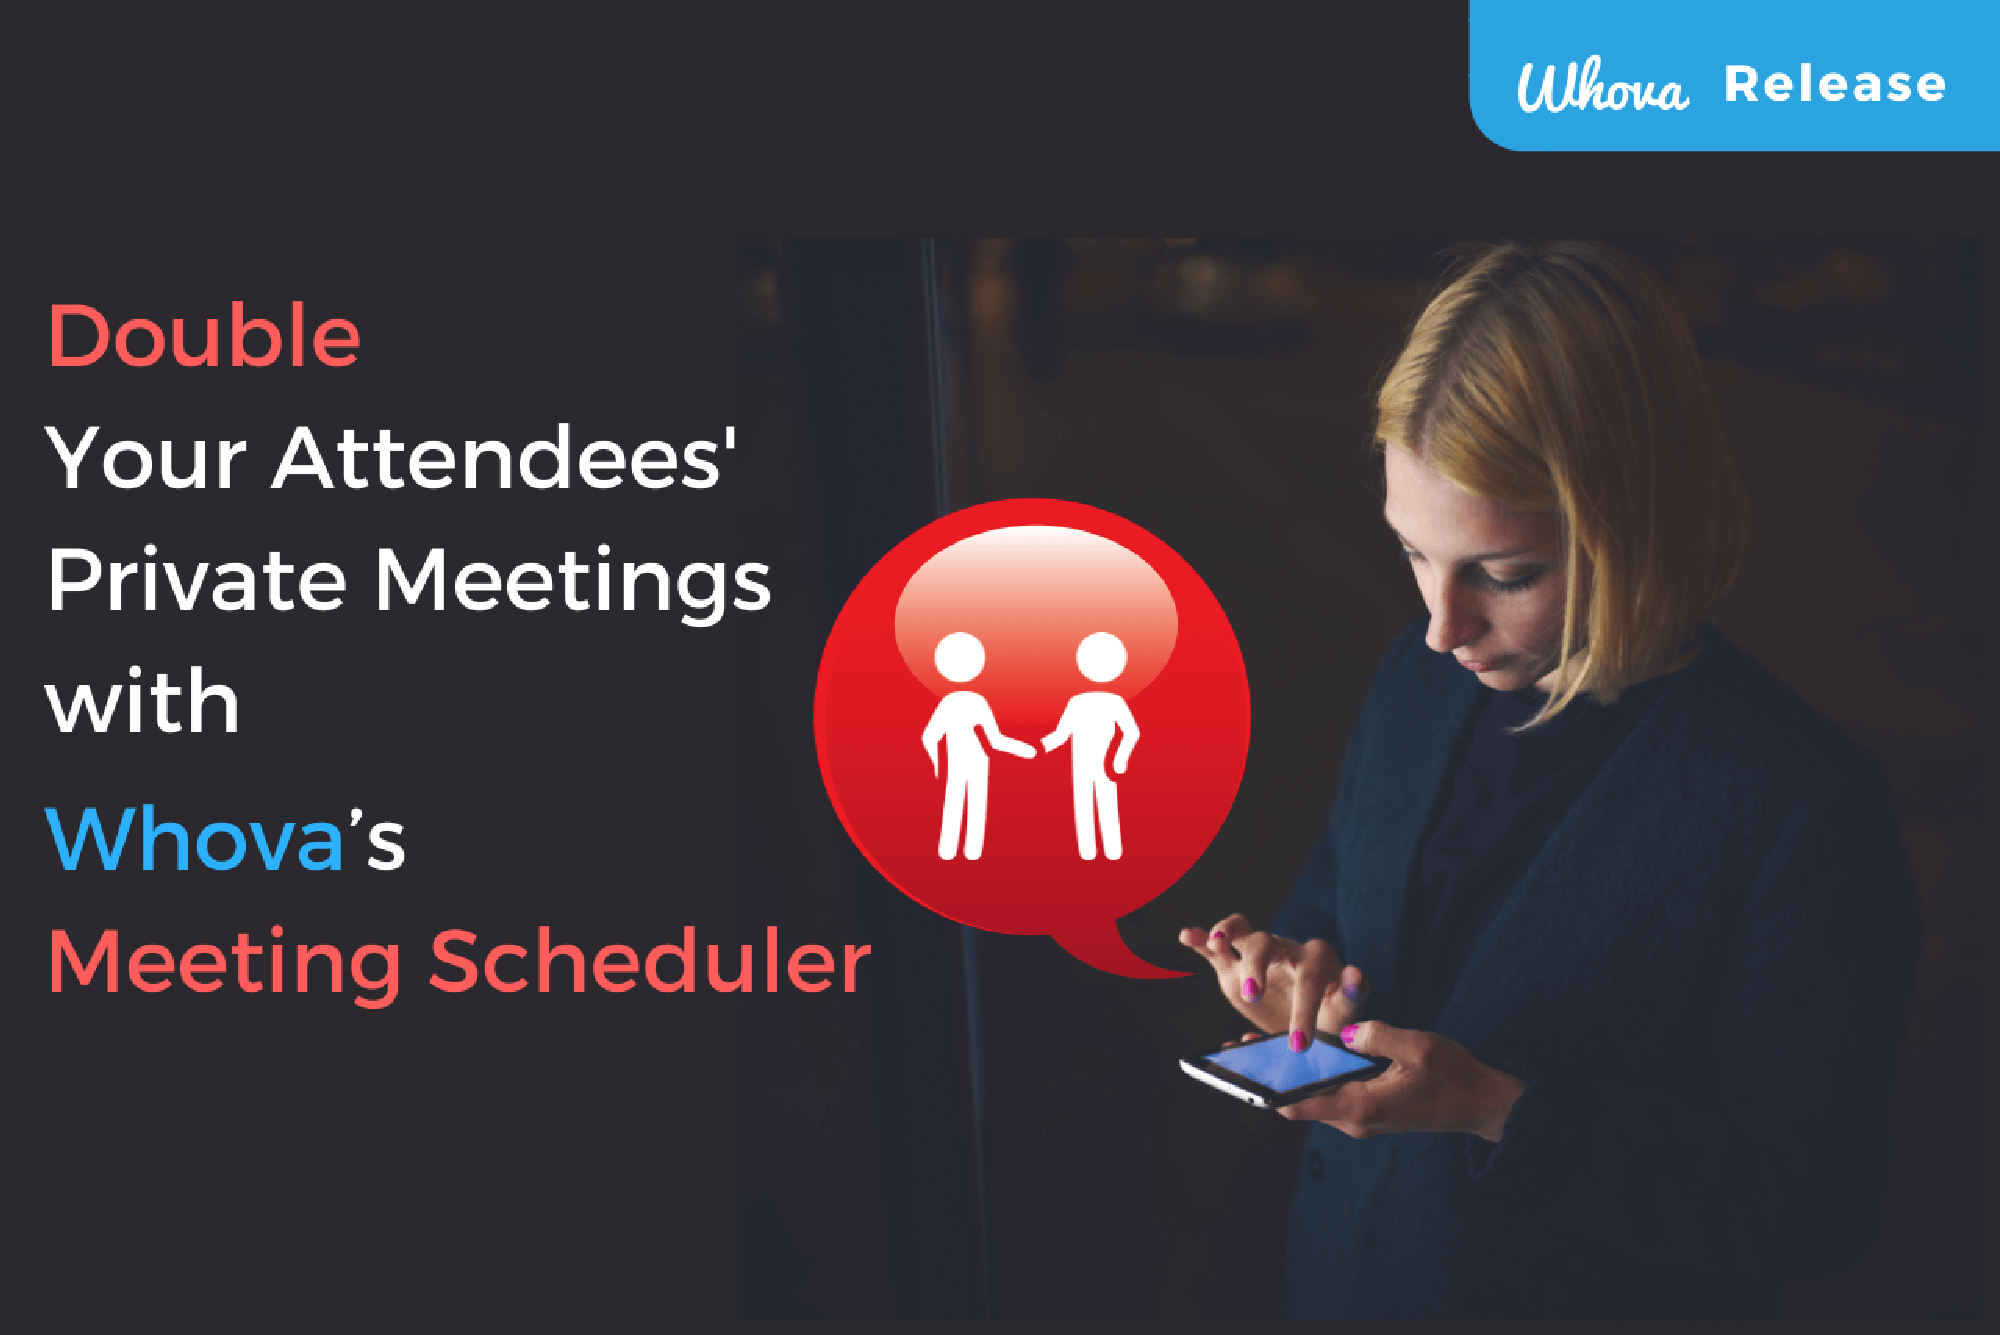 DOUBLE Your Attendees' Private Meetings! Whova's Meeting Scheduler Makes an Event More Productive